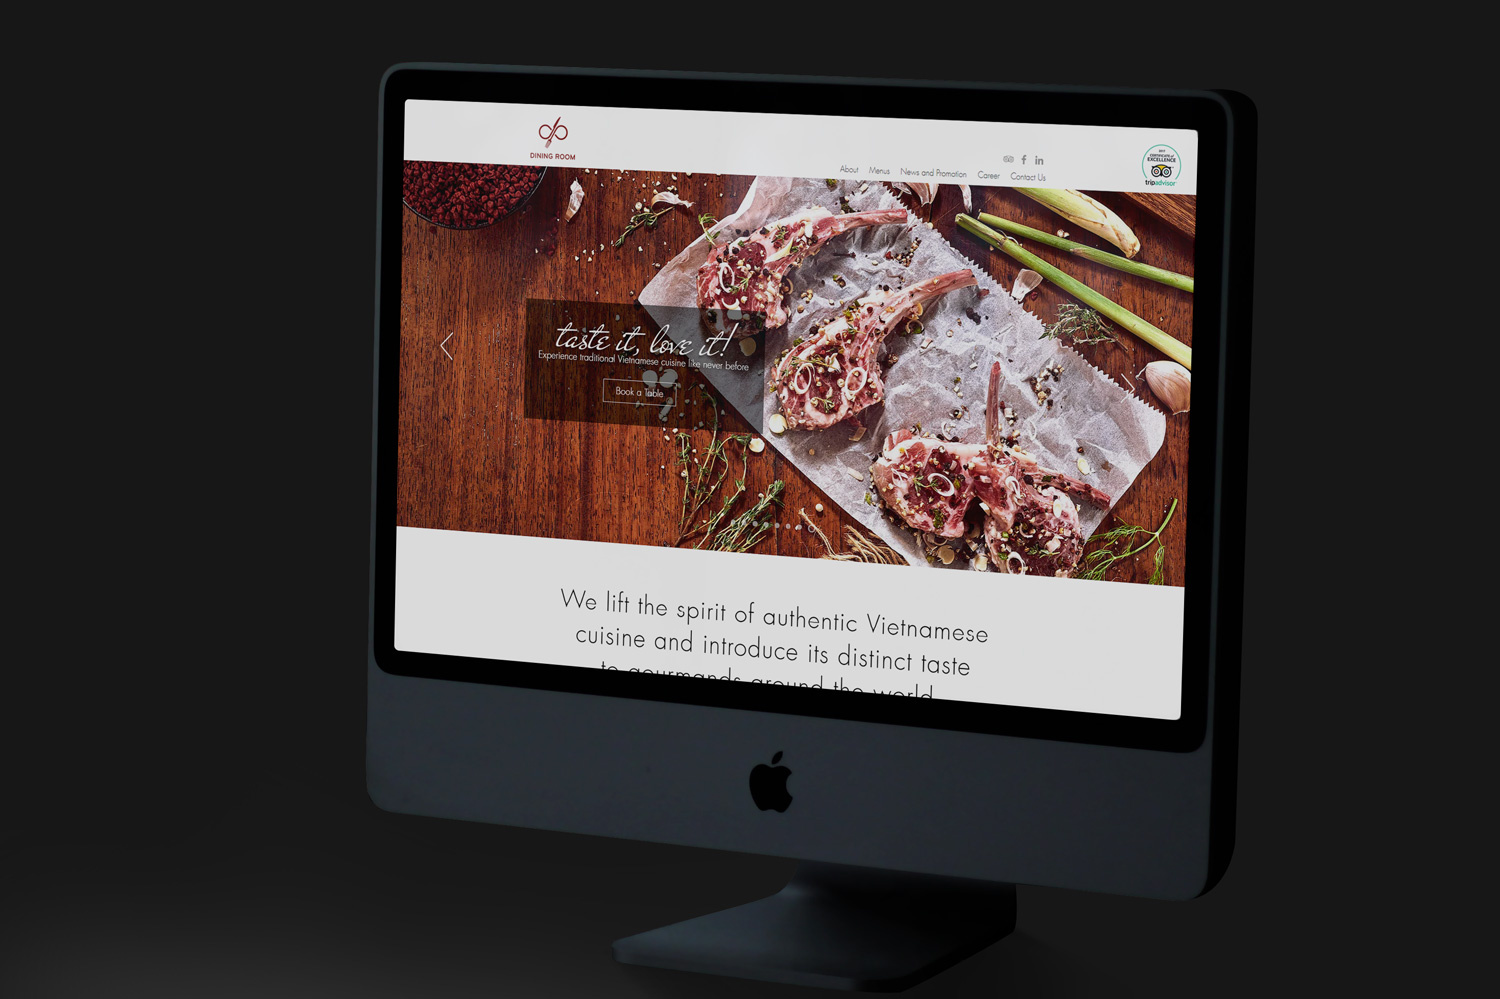 Dining Room Restaurant website interface